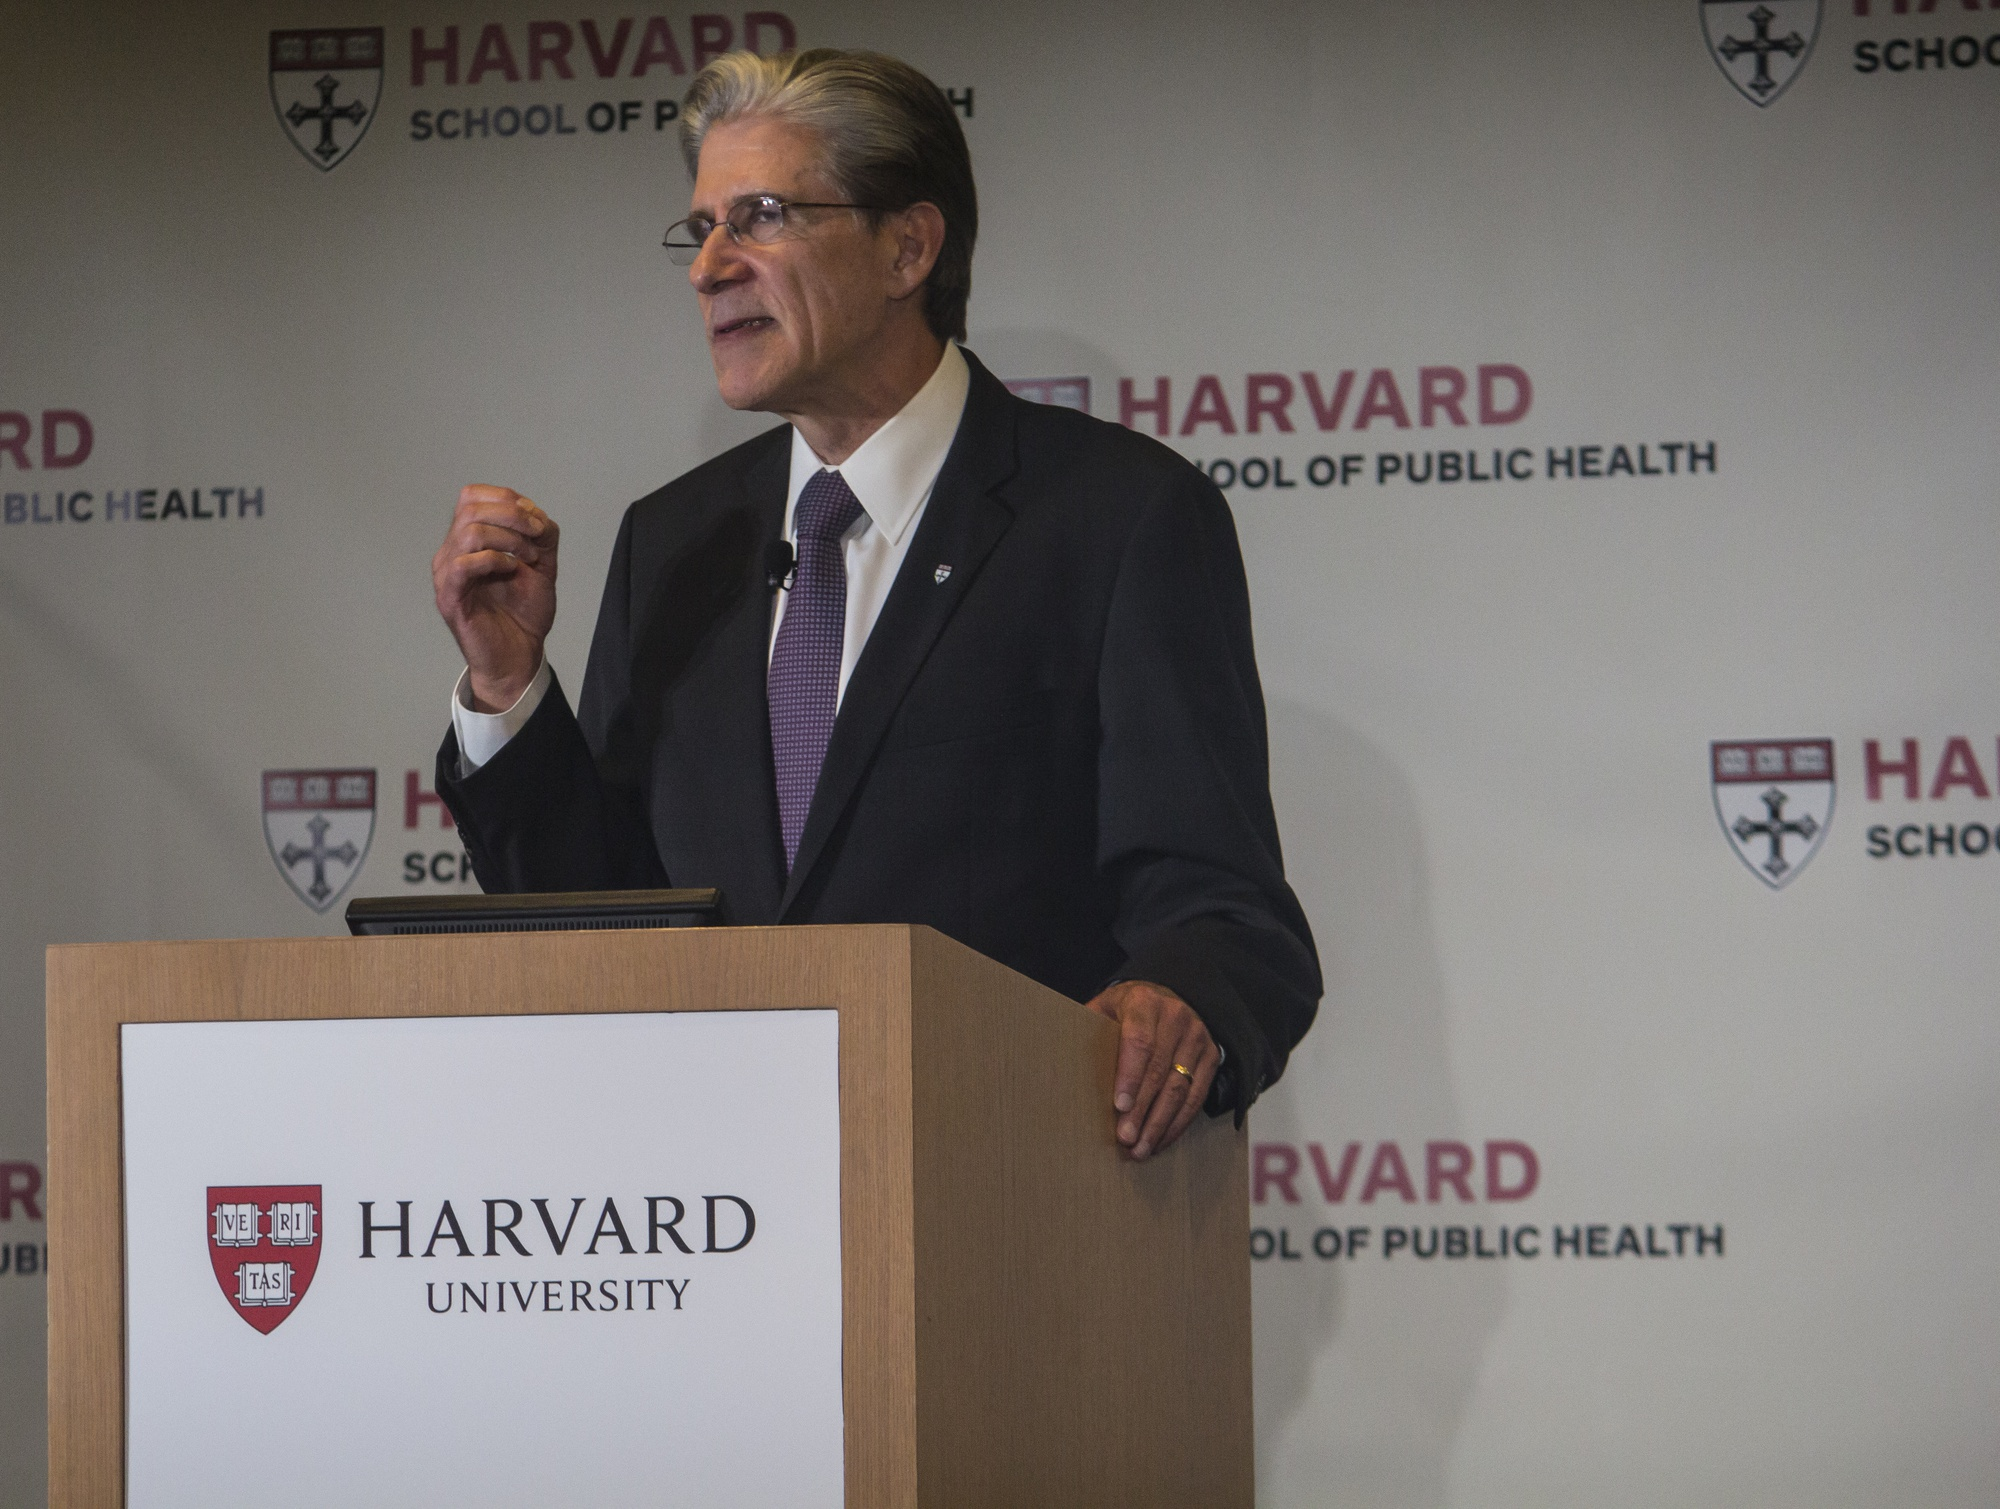 Julio Frenk, the dean of the Harvard School of Public Health, talks on Monday about the school's history, its achievements, and the future of public health across the globe.